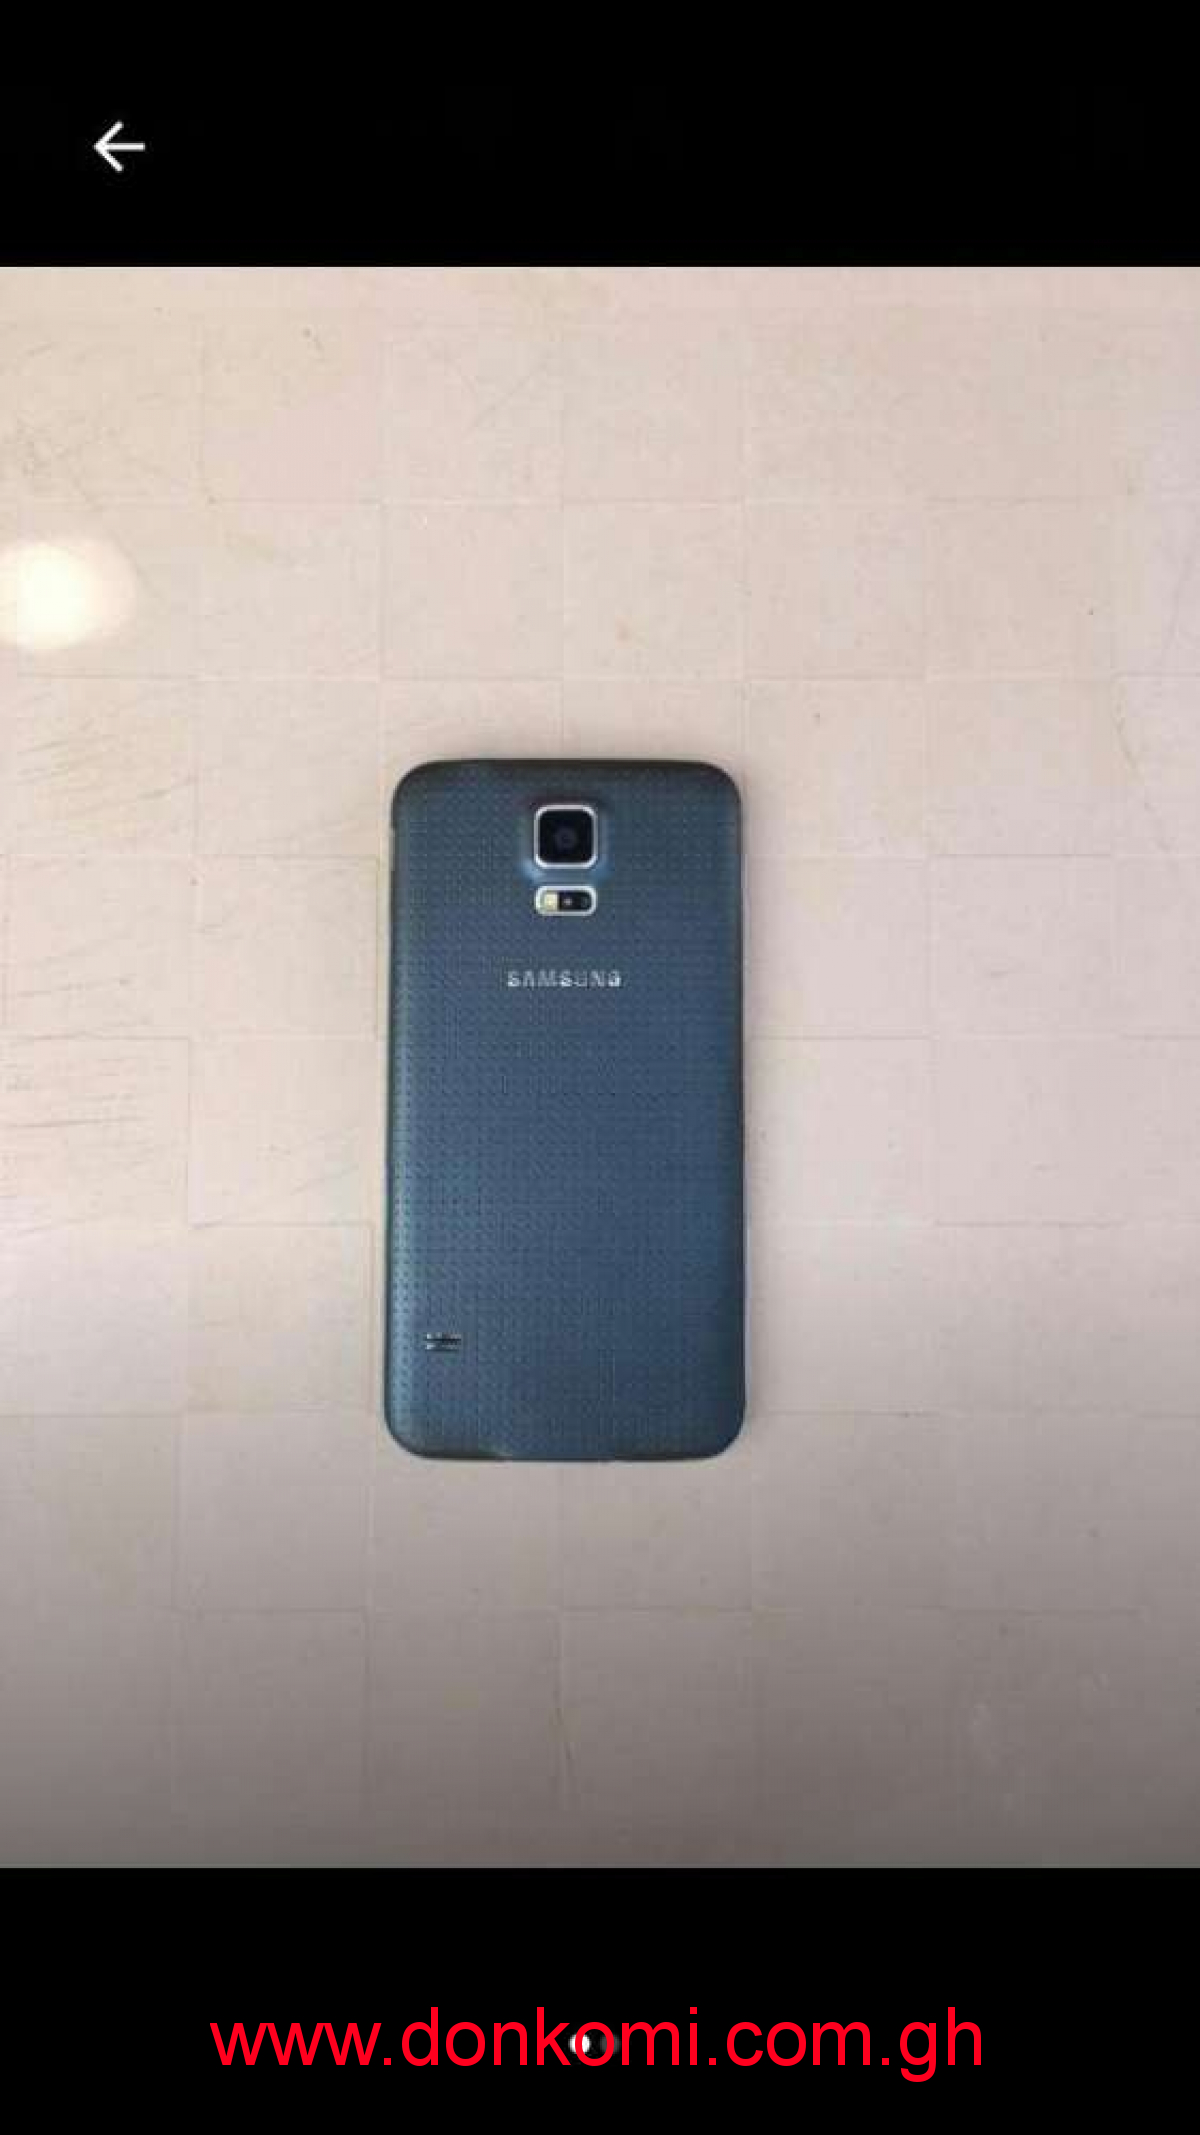 Original Galaxy S5, in good condition, very neat, made by Vietnam